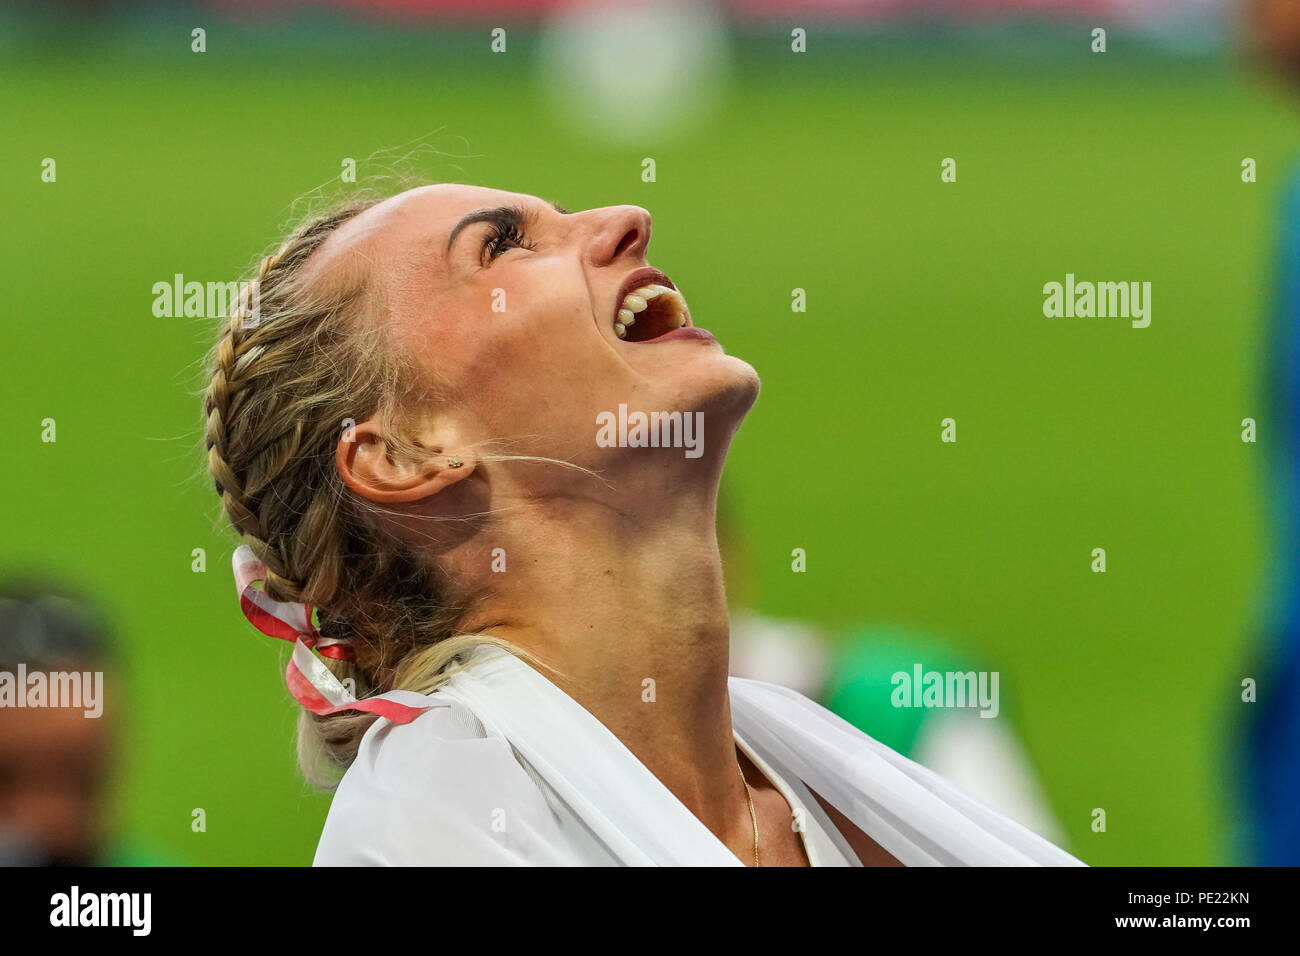 Berlin, Germany, August 11, 2018: Justyna Swiety-Ersetic winning the 400 meter final for women at the Olympic Stadium in Berlin at the European Athletics Championship. Ulrik Pedersen/CSM Credit: Cal Sport Media/Alamy Live News Credit: Cal Sport Media/Alamy Live News - Stock Image